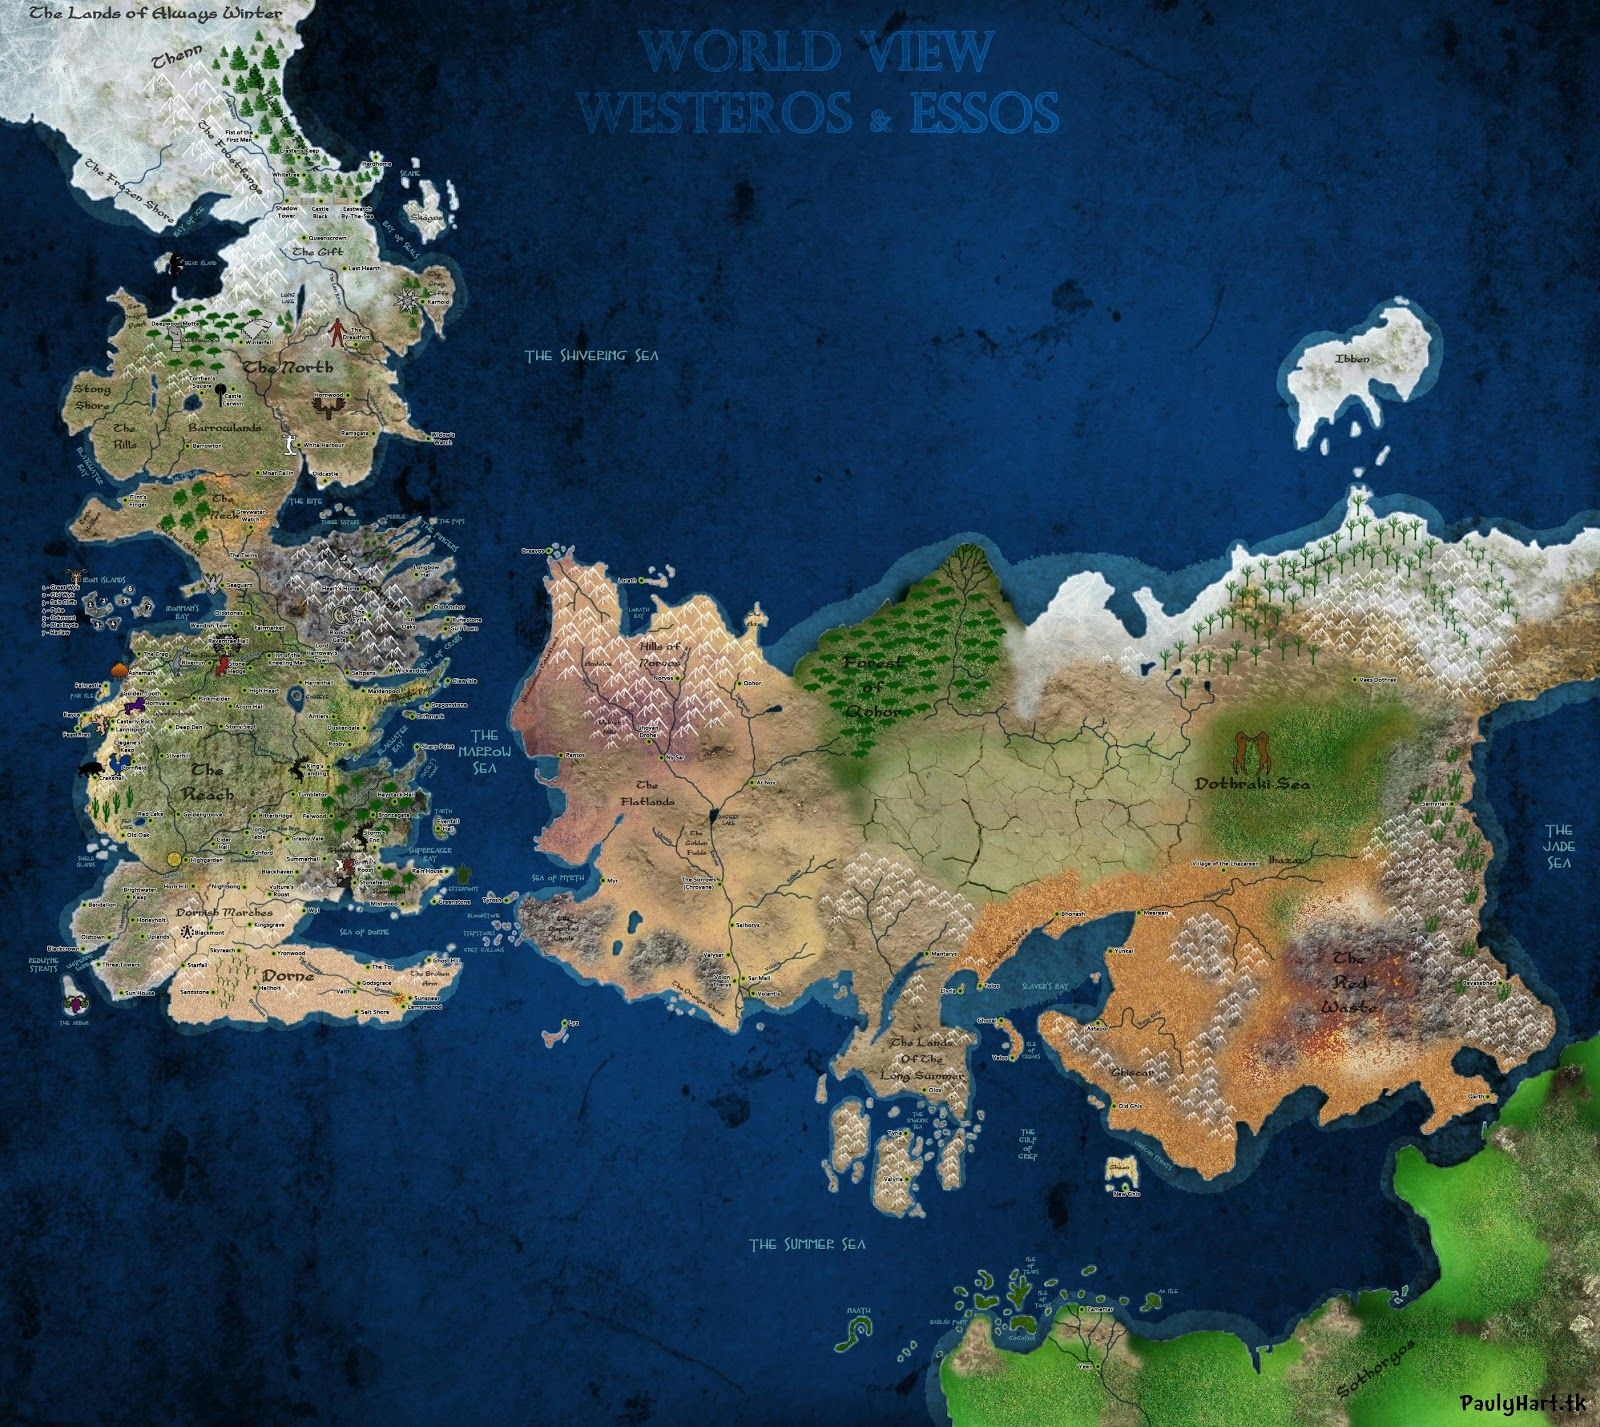 Game Of Thrones Maps Hbo on deadwood hbo, game of thrones maps and families, true detective hbo, game of thrones hbo store, game of thrones hbo series, game of thrones maps pdf,